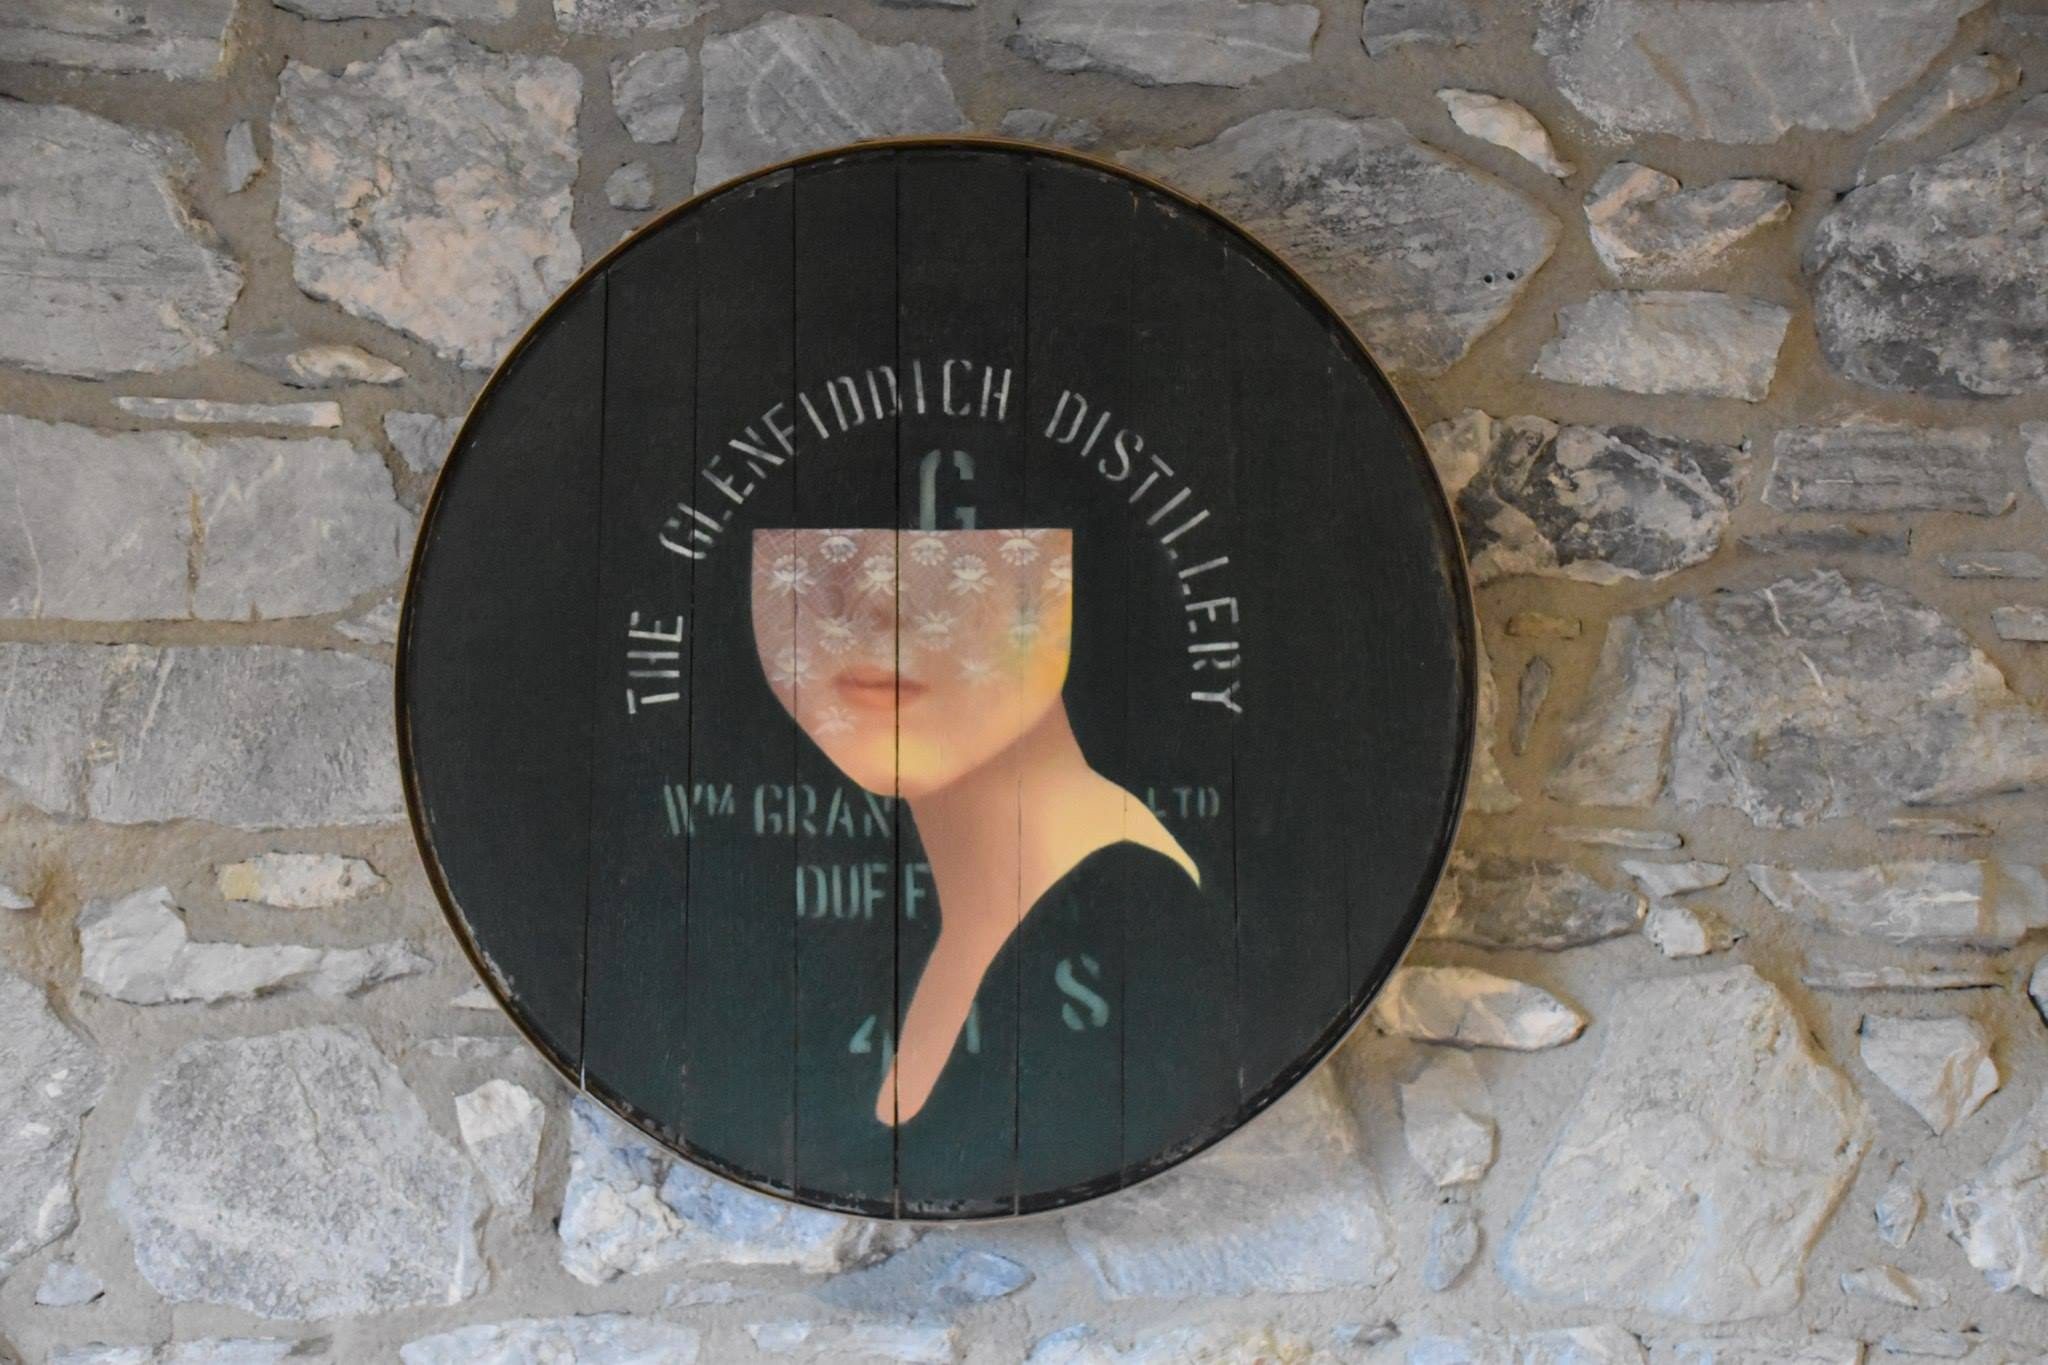 The Glenfiddich Visitor Center